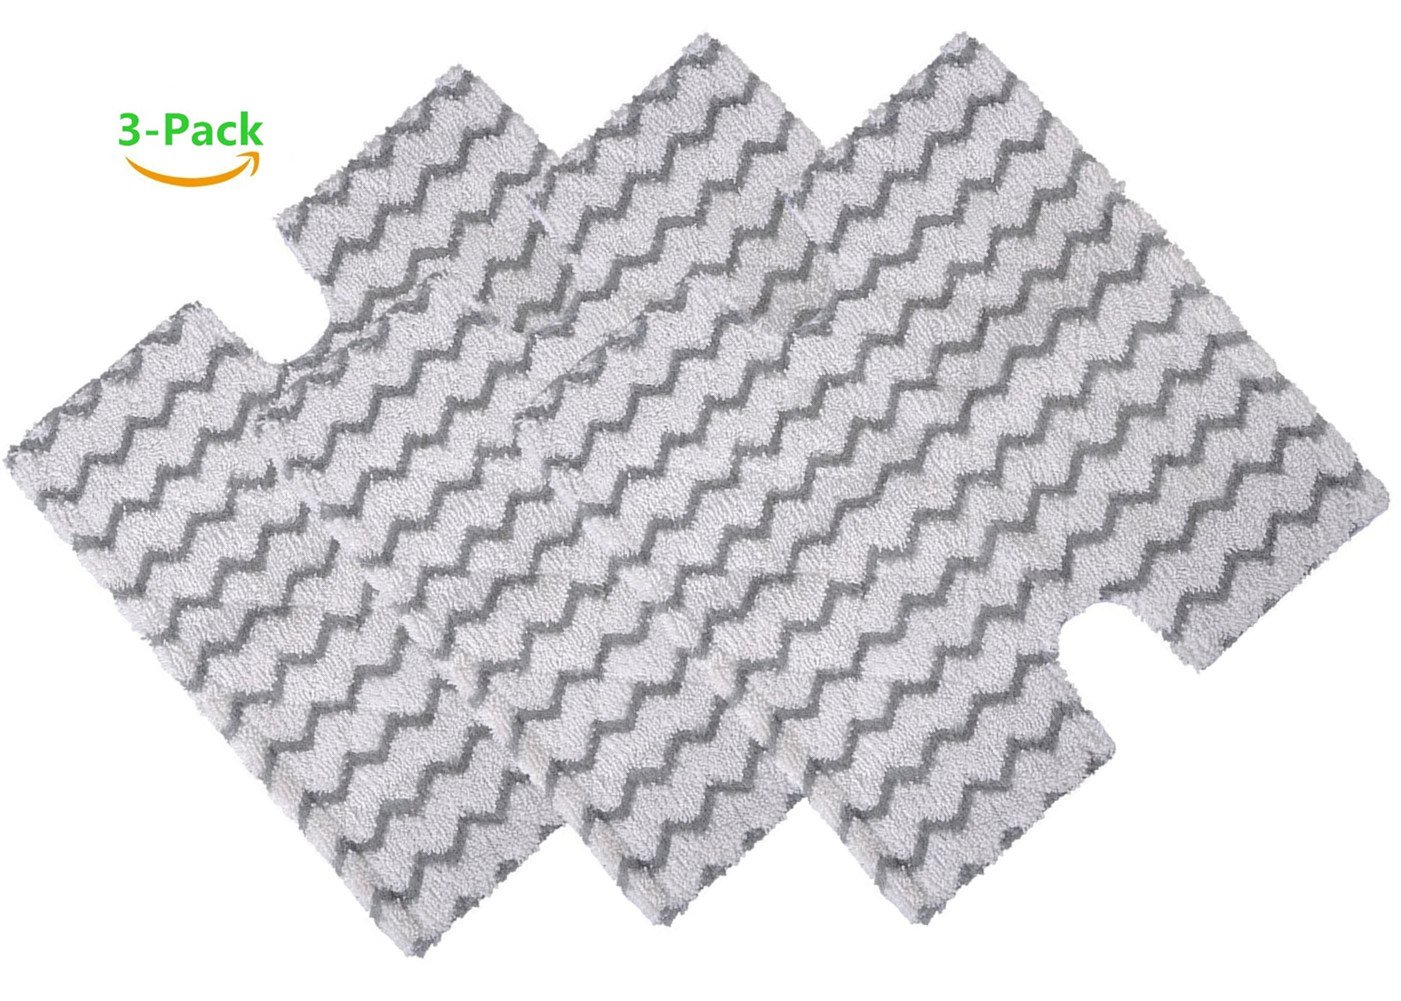 3 Pack Replacement Steam Mop Pads for Shark Lift-Away Pro Steam Pocket Mop and Genius Steam Pocket Mop Series, Model S3973 S3973D S3973WM S5001 S5002Q S5003D S5003A S6001W S6001WM S6002 S6003W (Three)